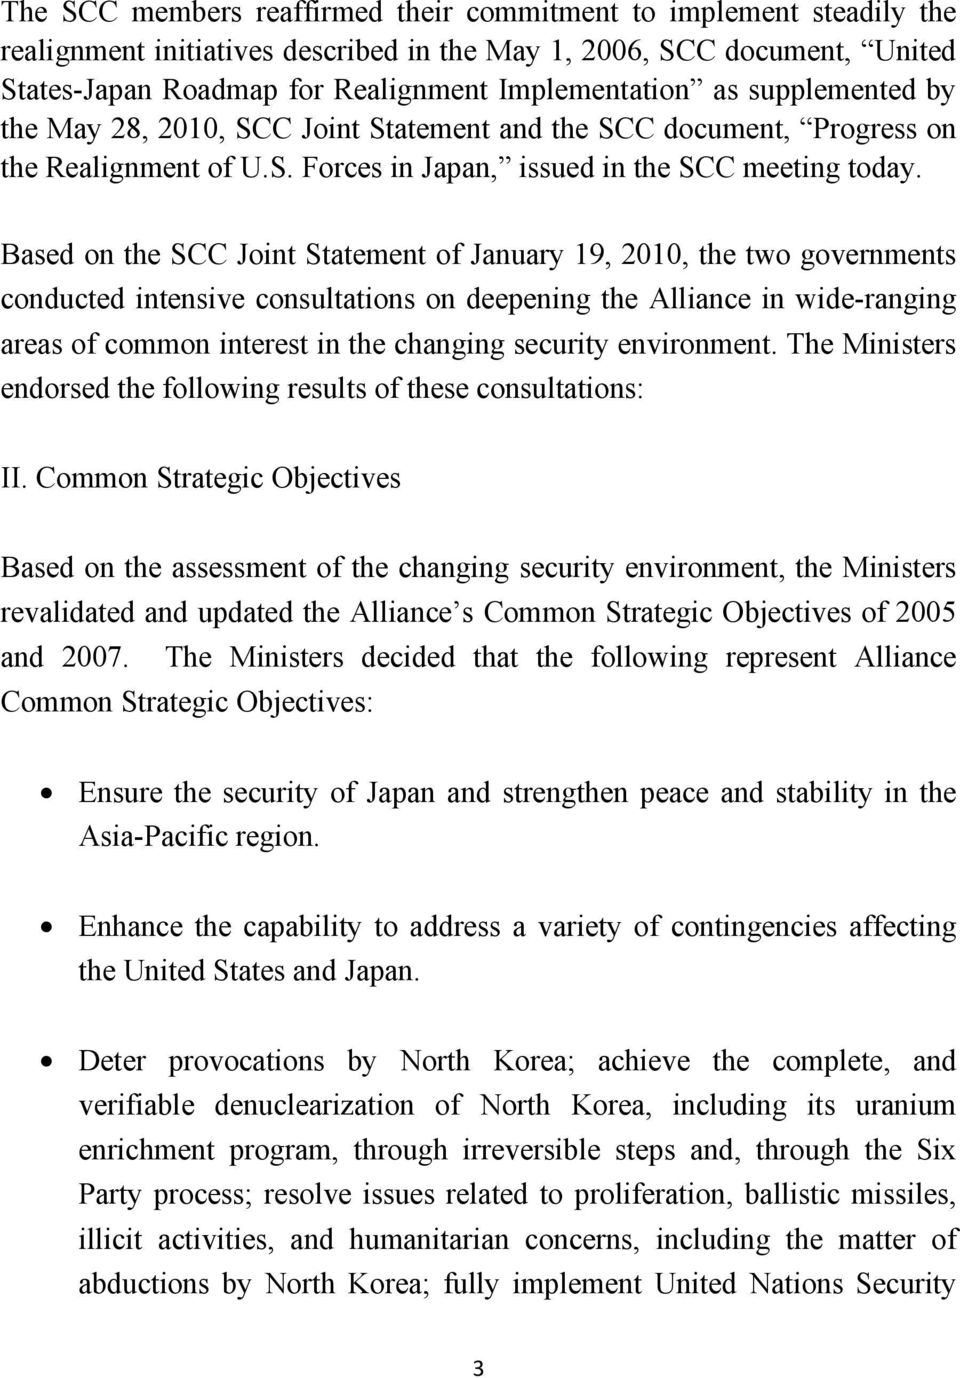 Based on the SCC Joint Statement of January 19, 2010, the two governments conducted intensive consultations on deepening the Alliance in wide-ranging areas of common interest in the changing security